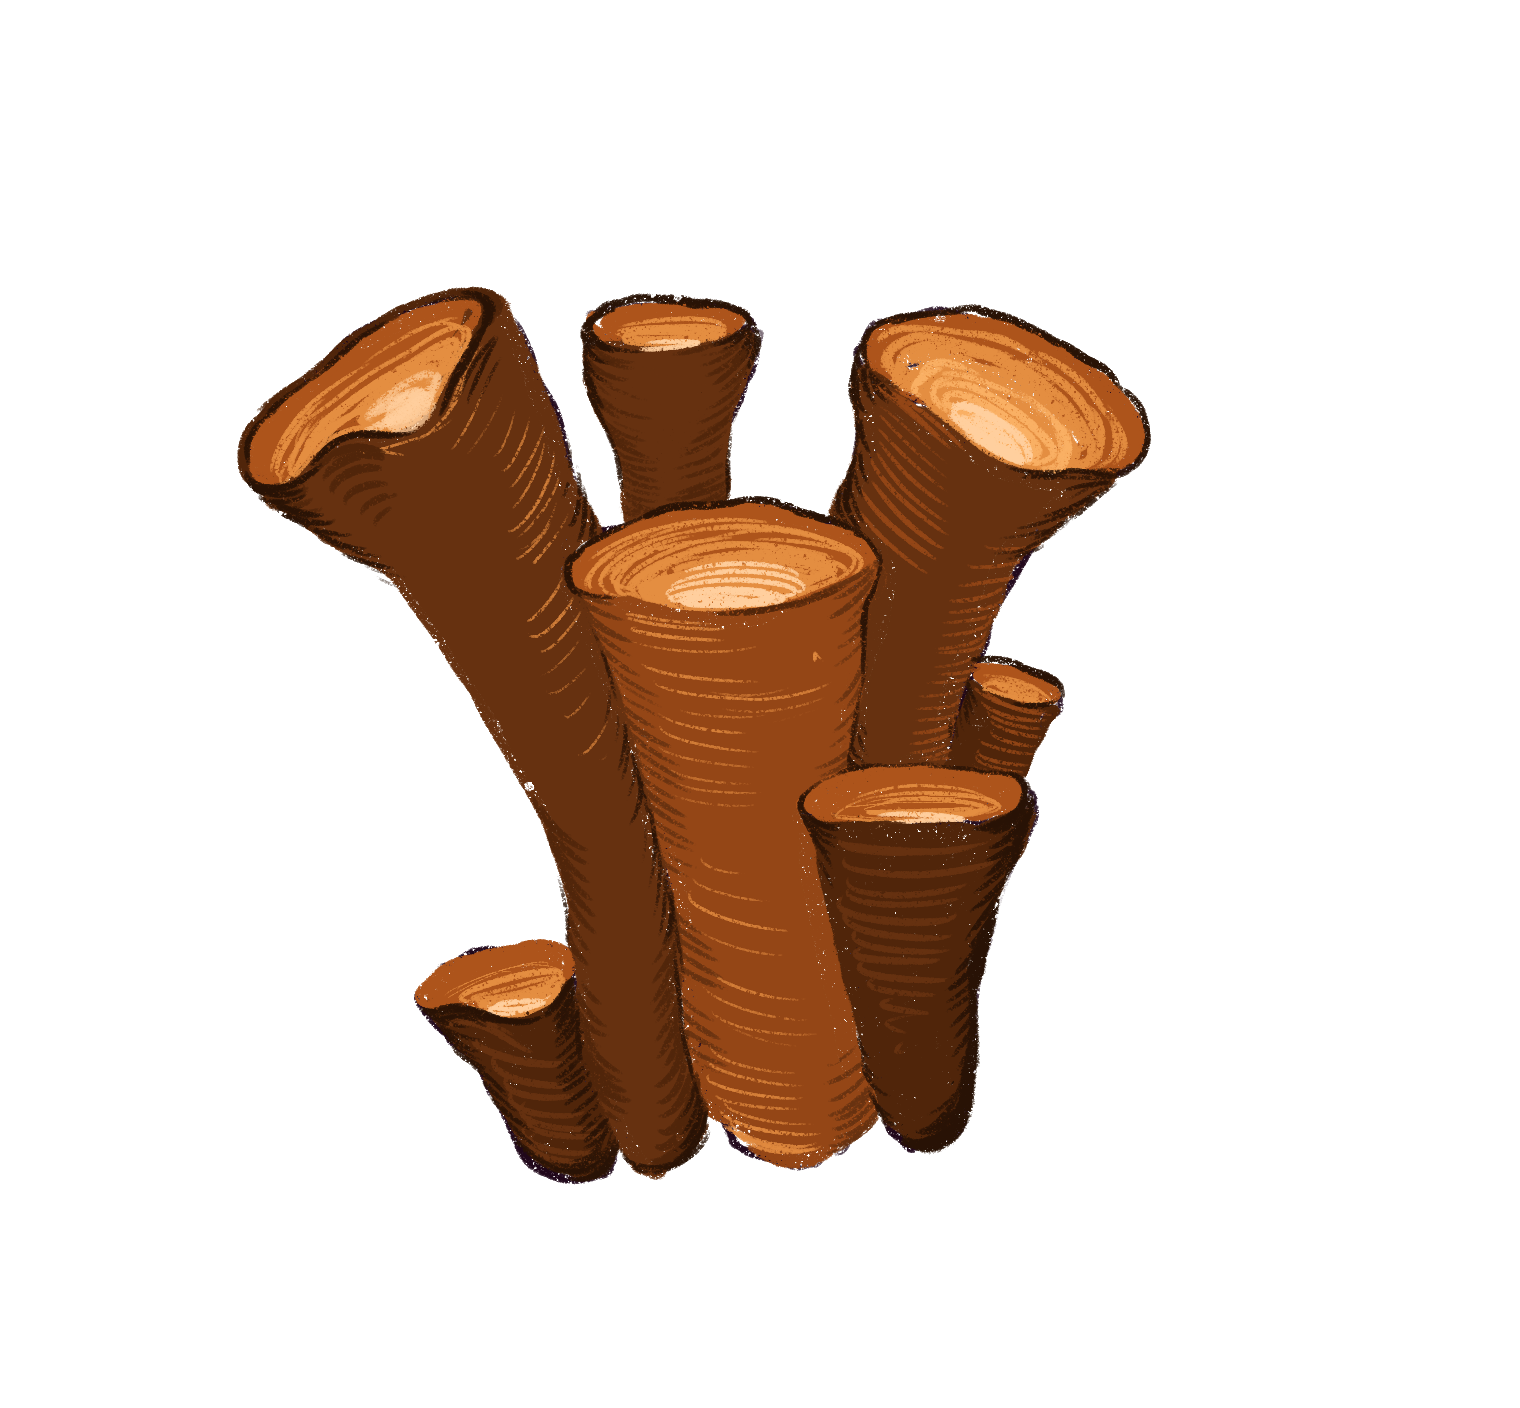 Assets/ObjectResources/LevelStructure/BackgroundsForegrounds/BG_Pilz_3.png